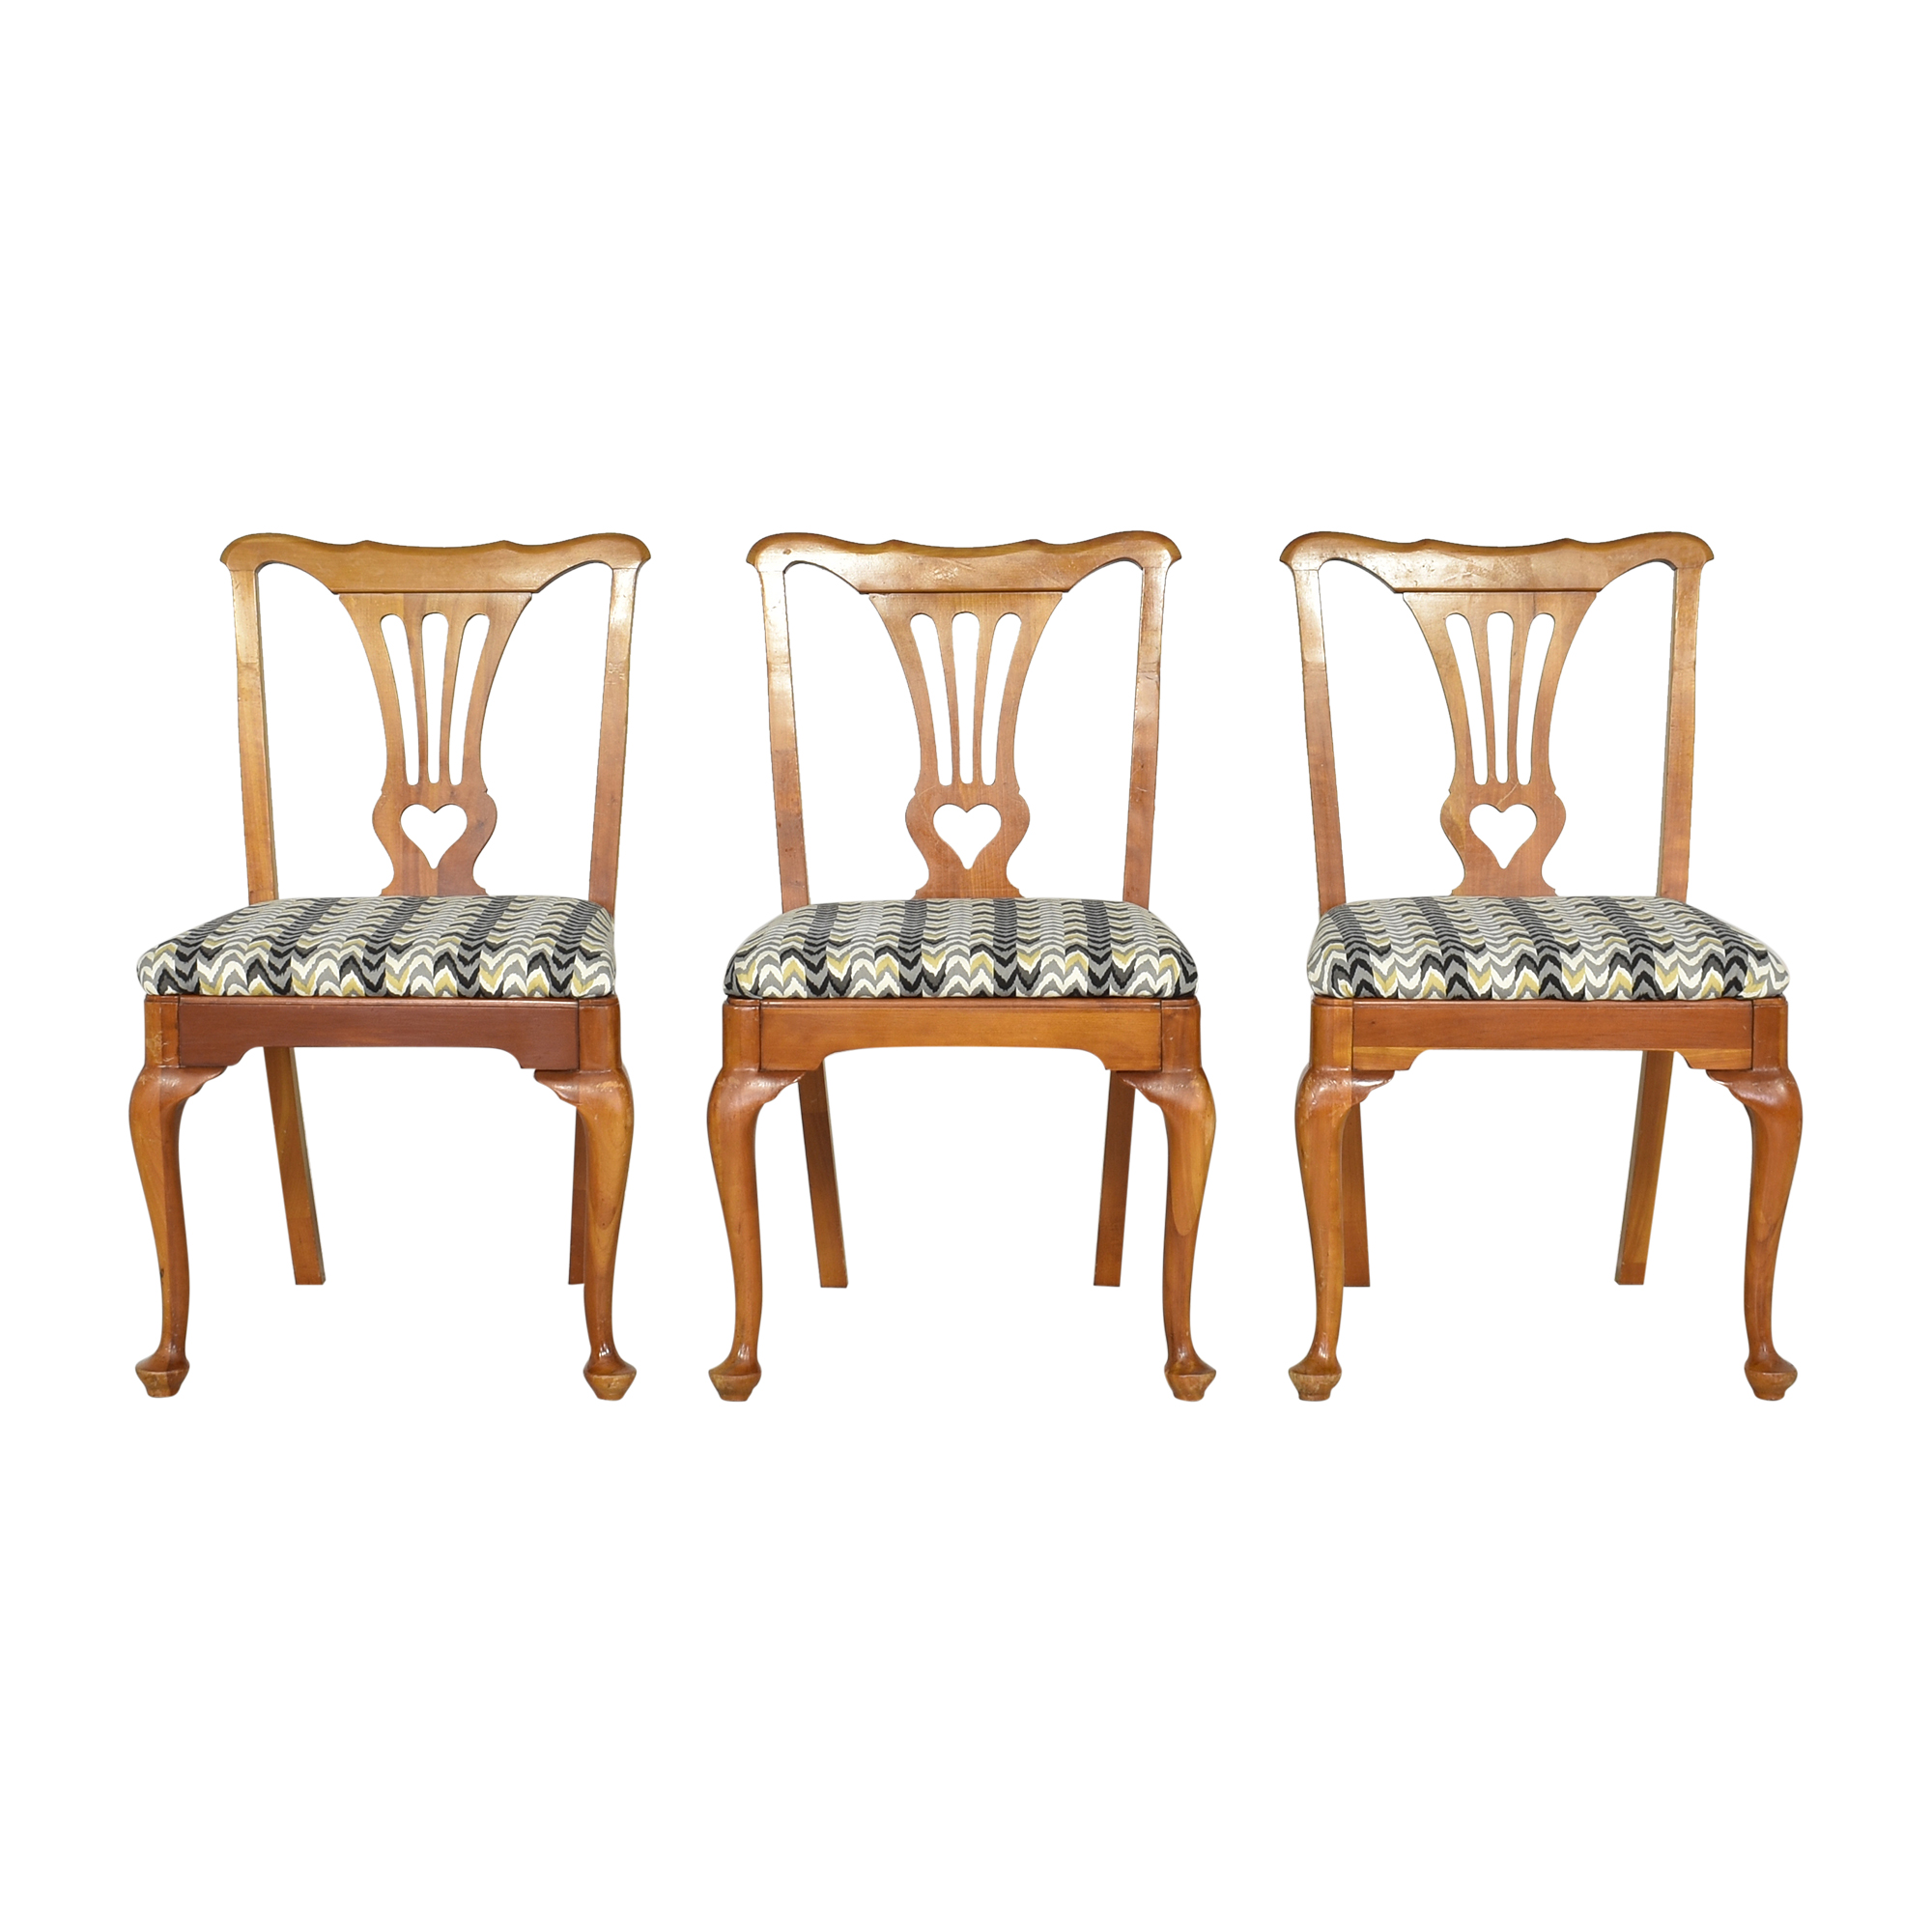 Queen Anne-Style Dining Chairs price